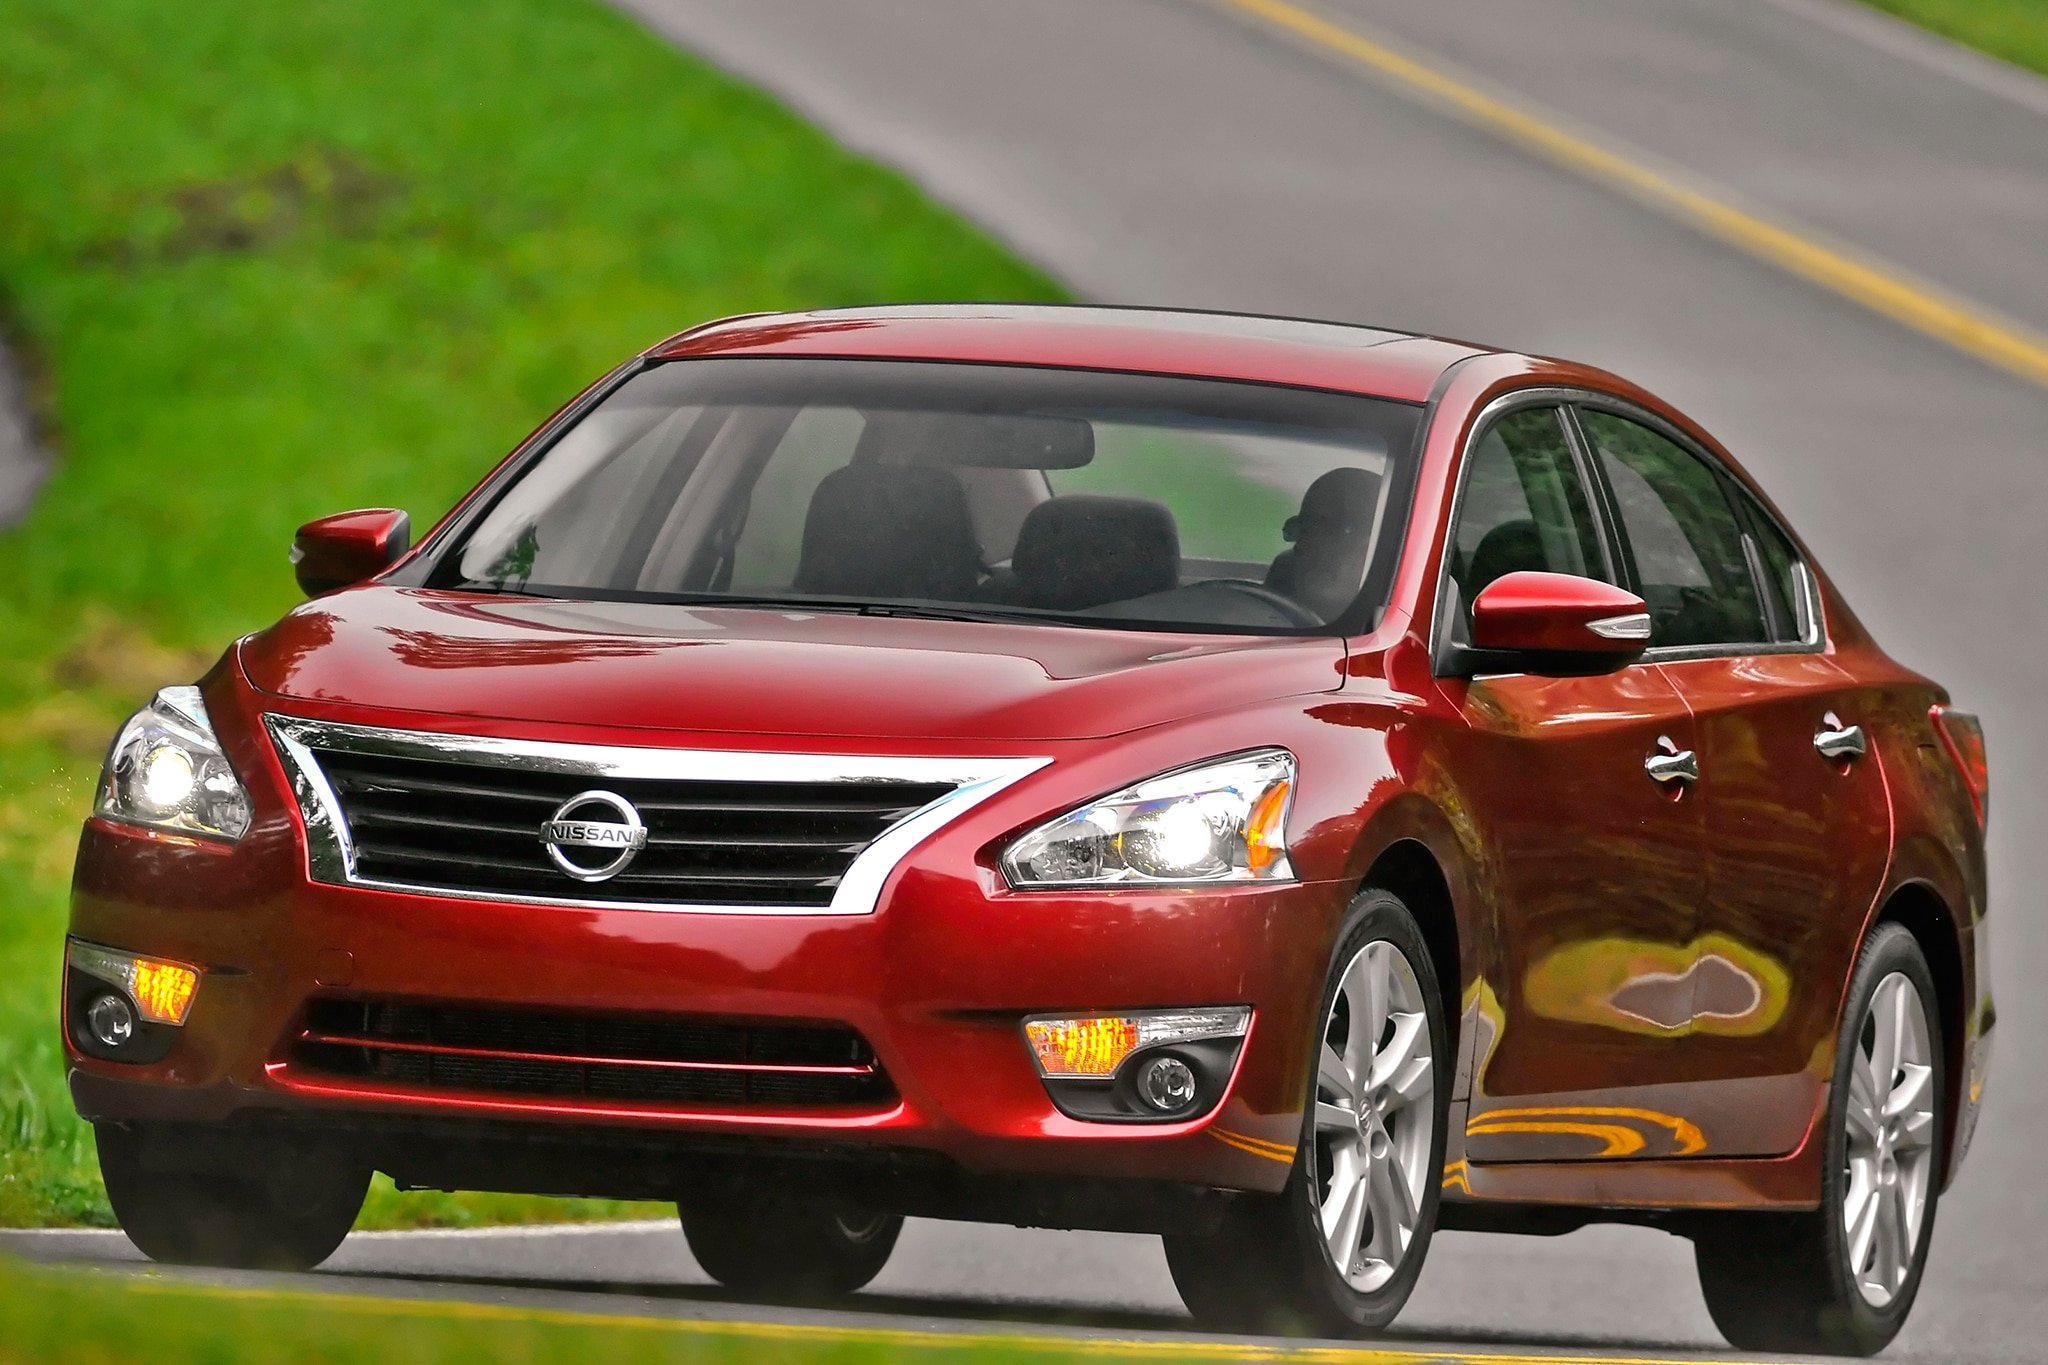 2014 Nissan Altima Grille View 11